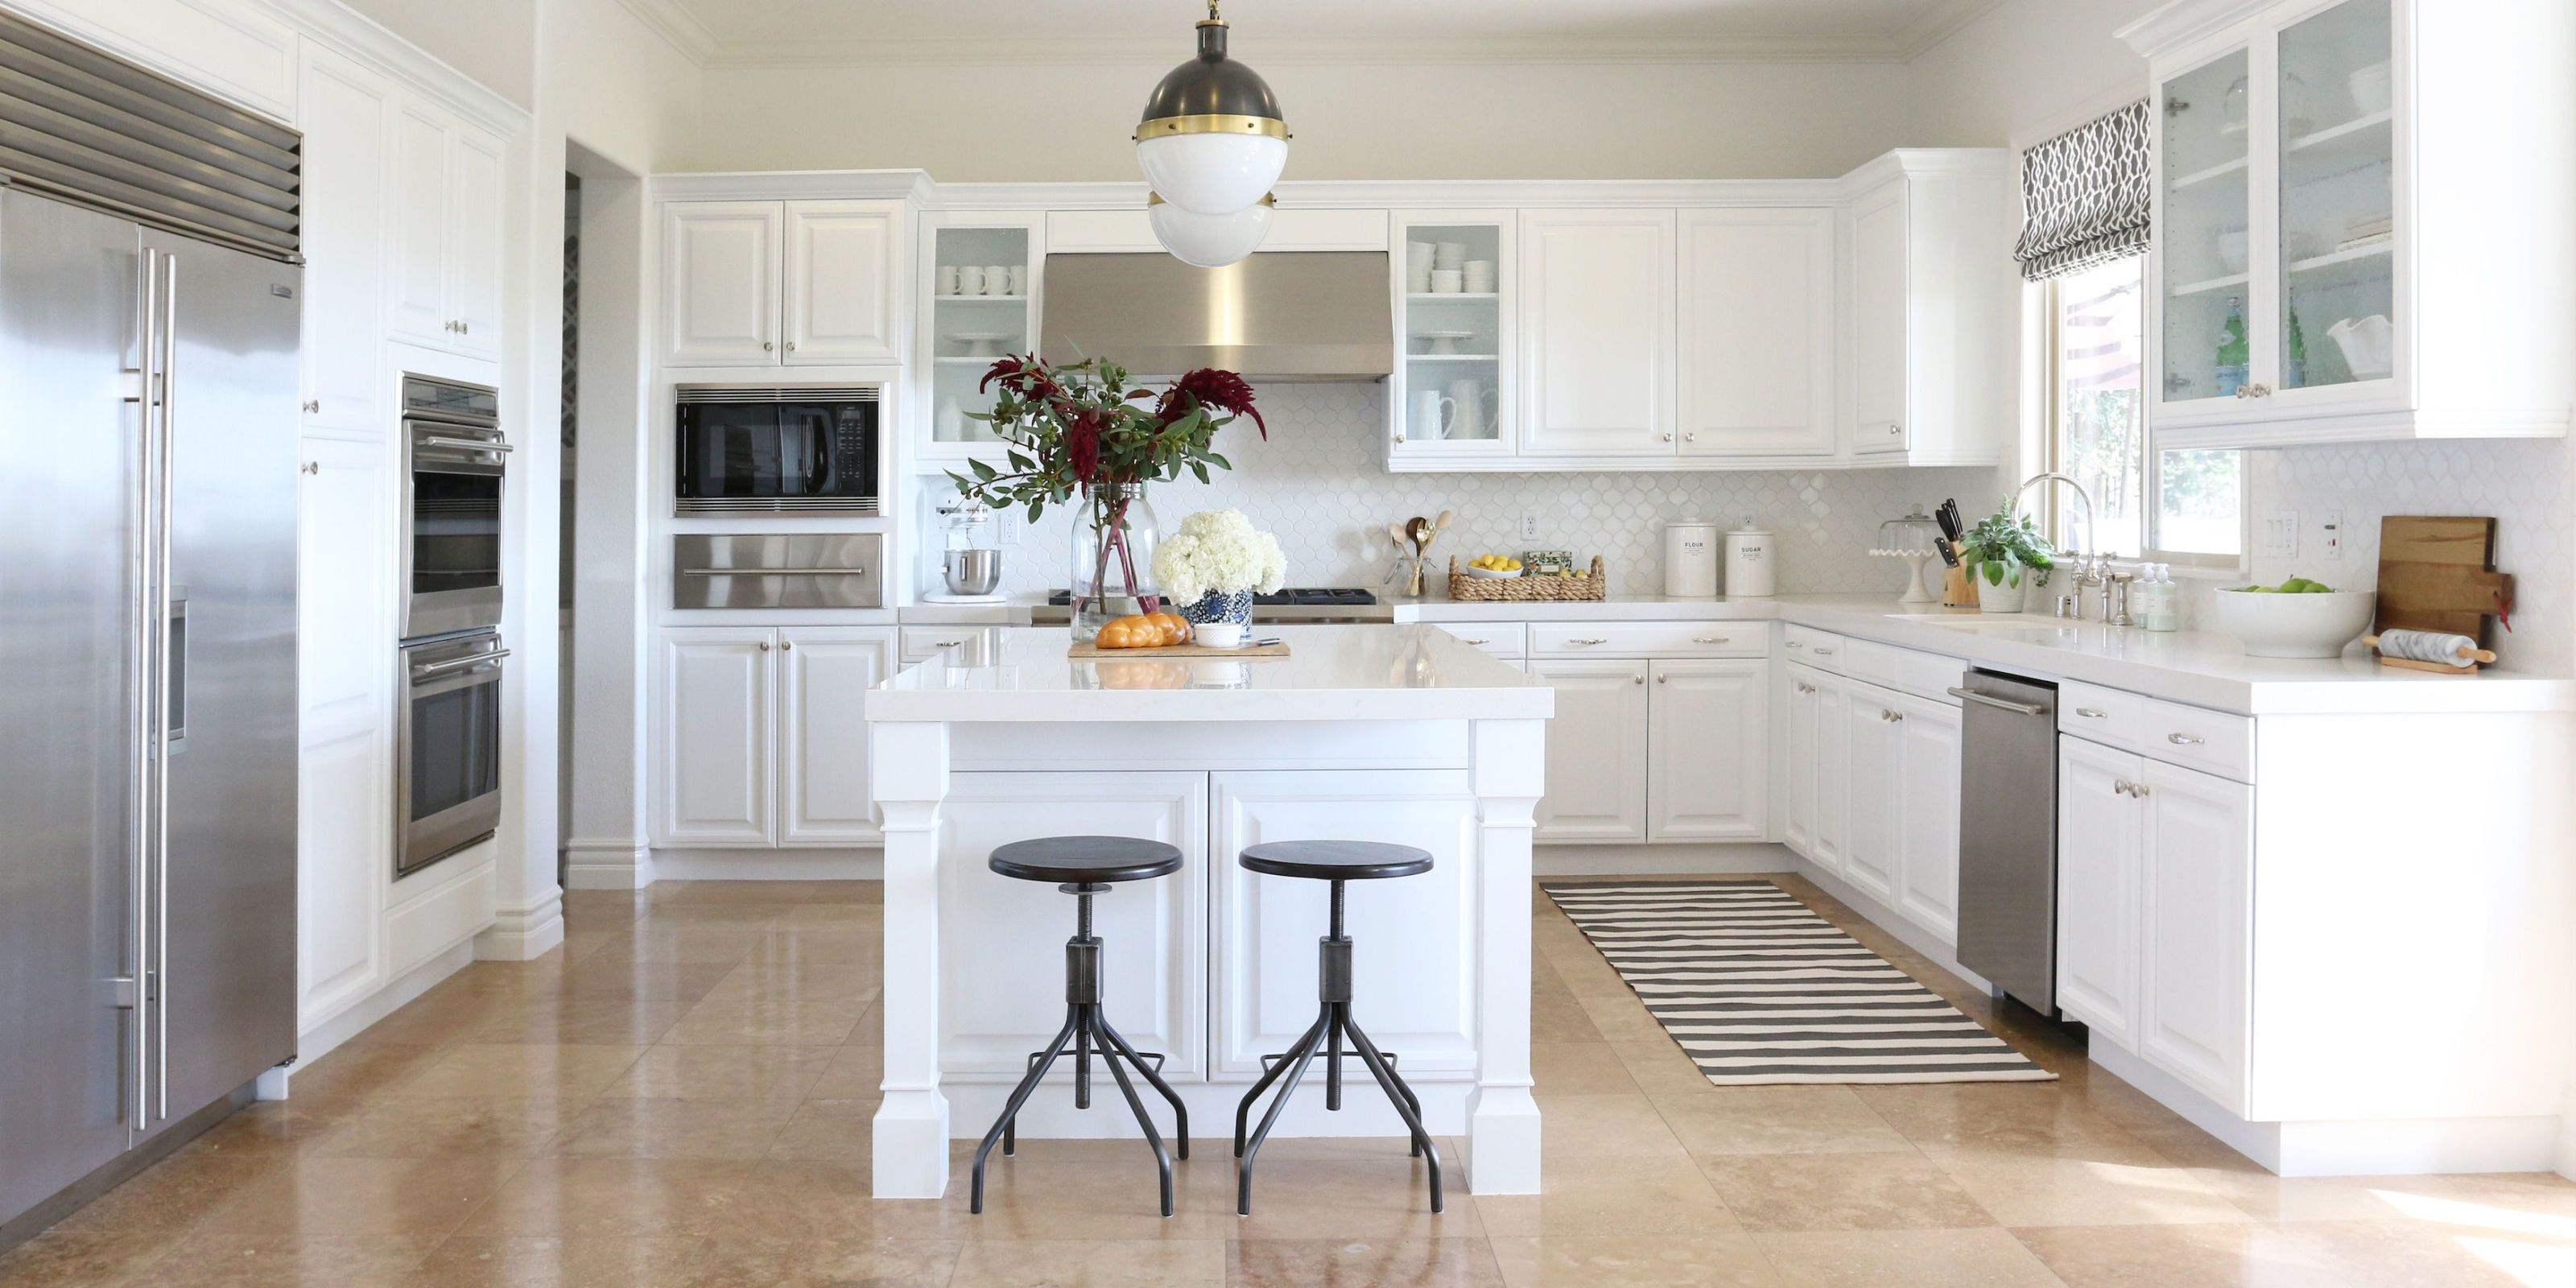 Attirant Bright, White Cabinetry Bounces Light And Makes For A Modern Kitchen.